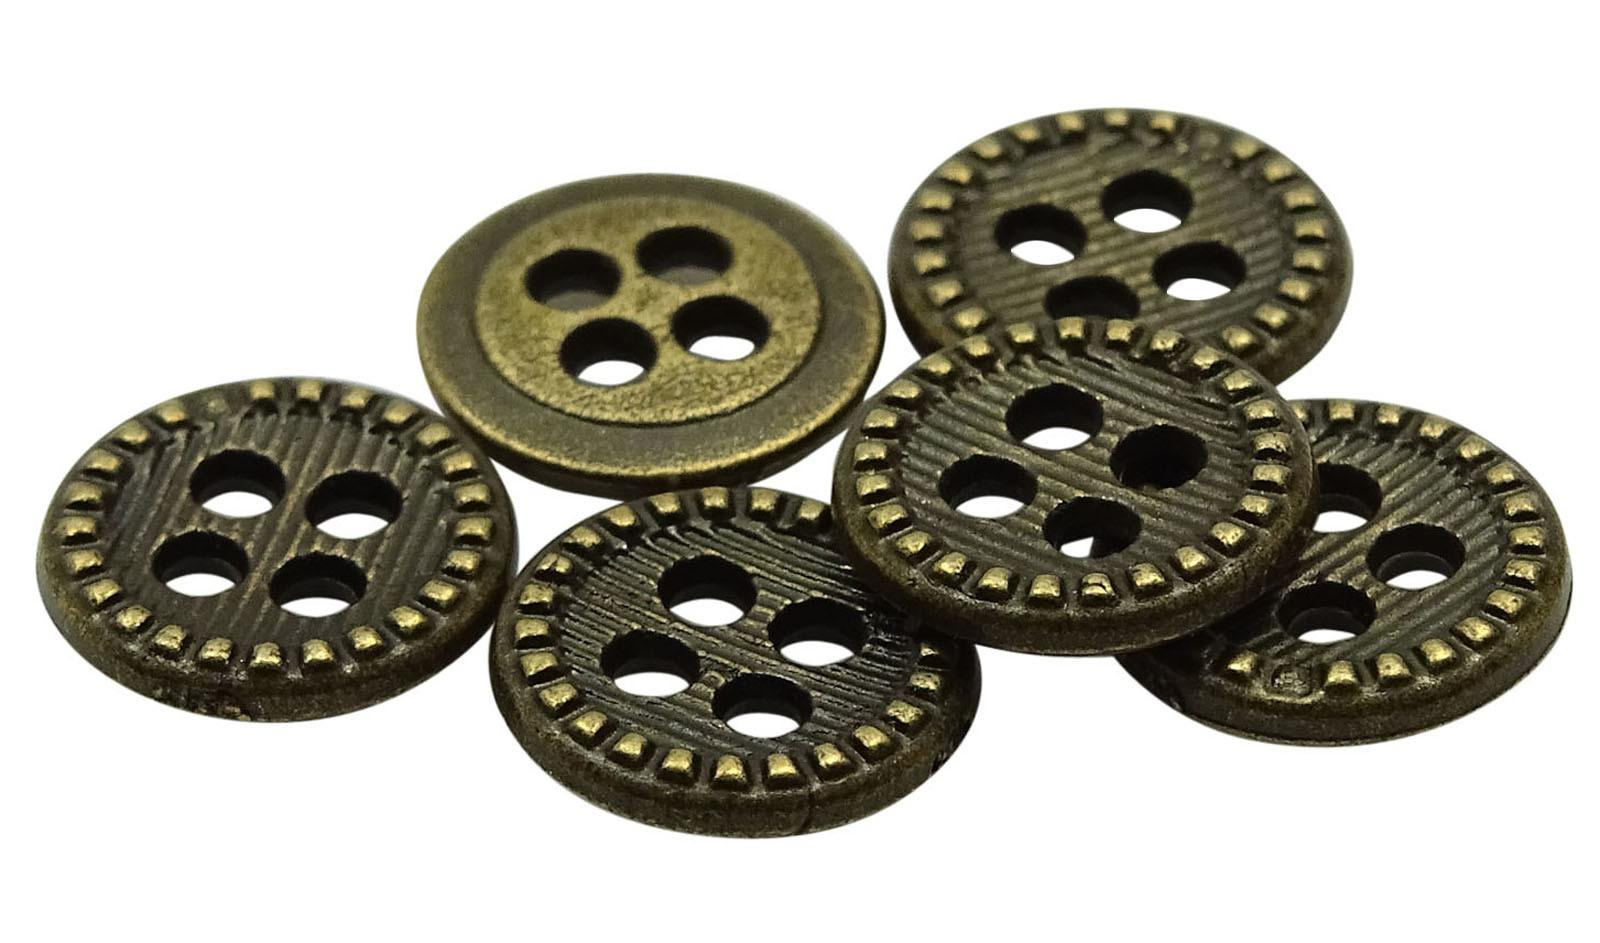 Round Metal Diy Buttons Wholesale Pack 140 Pieces